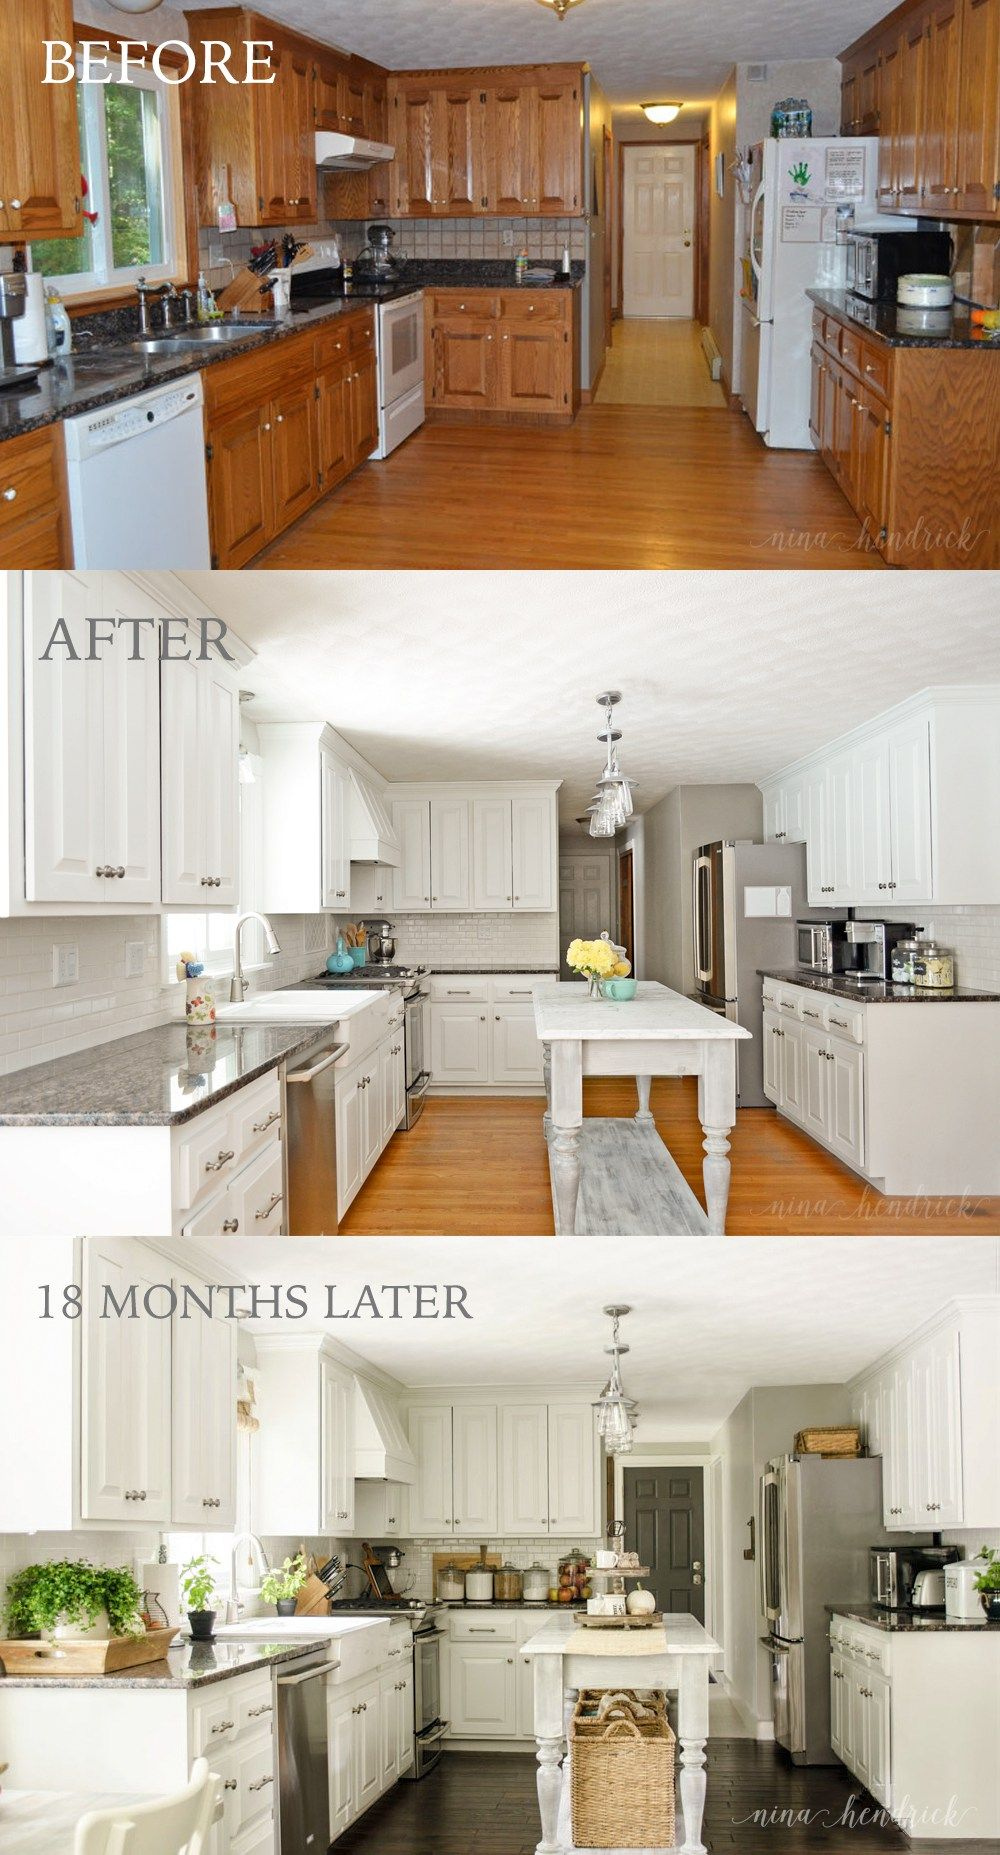 Superior White Painted Kitchen Before, After, U0026 18 Months Later By @nina_hendrick